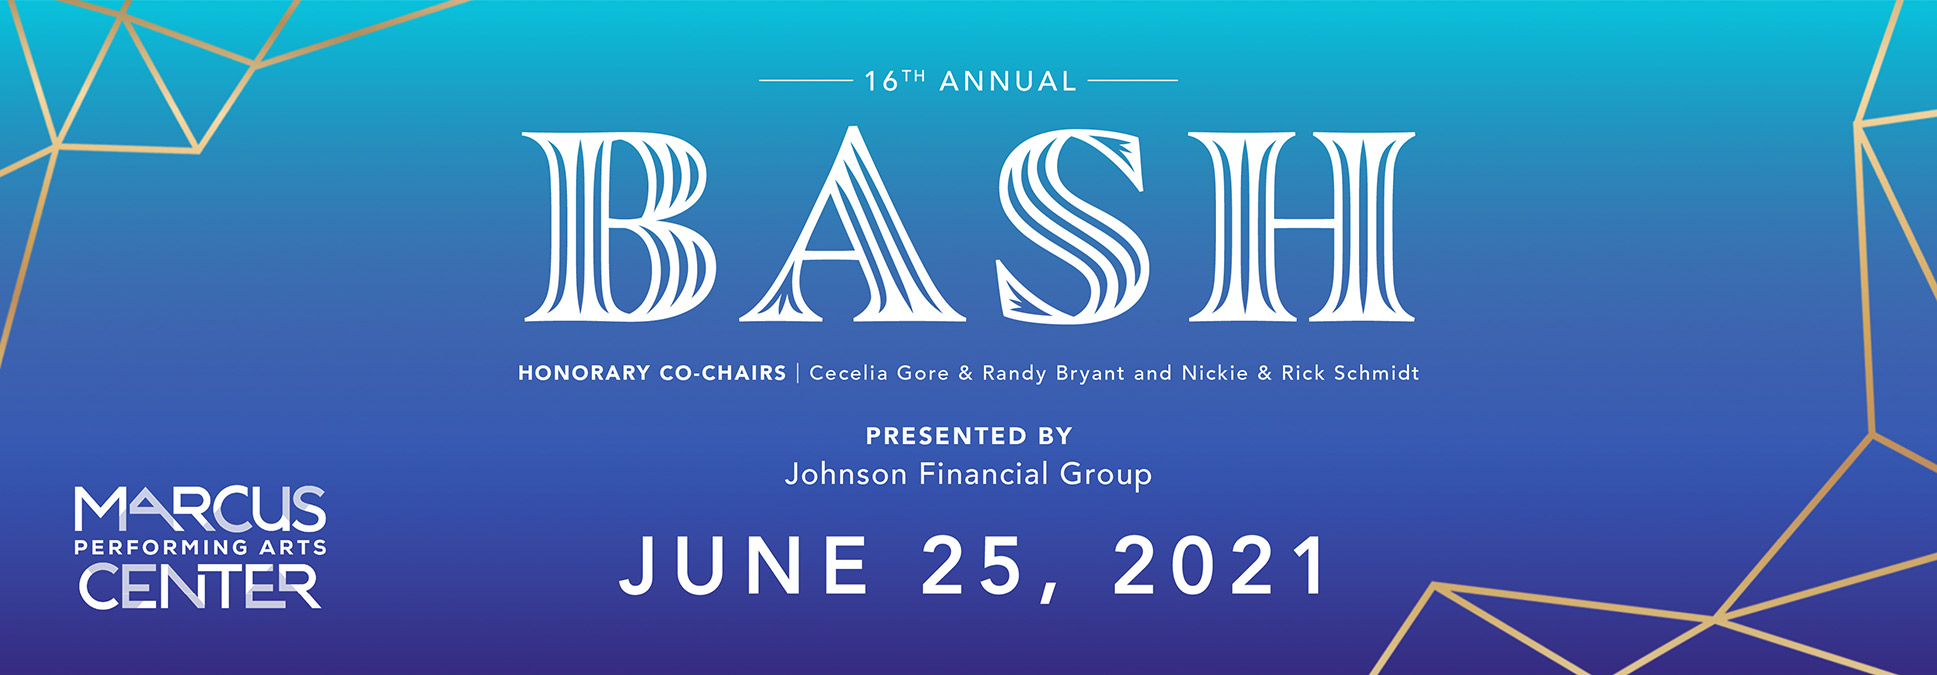 Broadway Bash Sponsorship Opportunity 2021 Marcus Center in Milwaukee